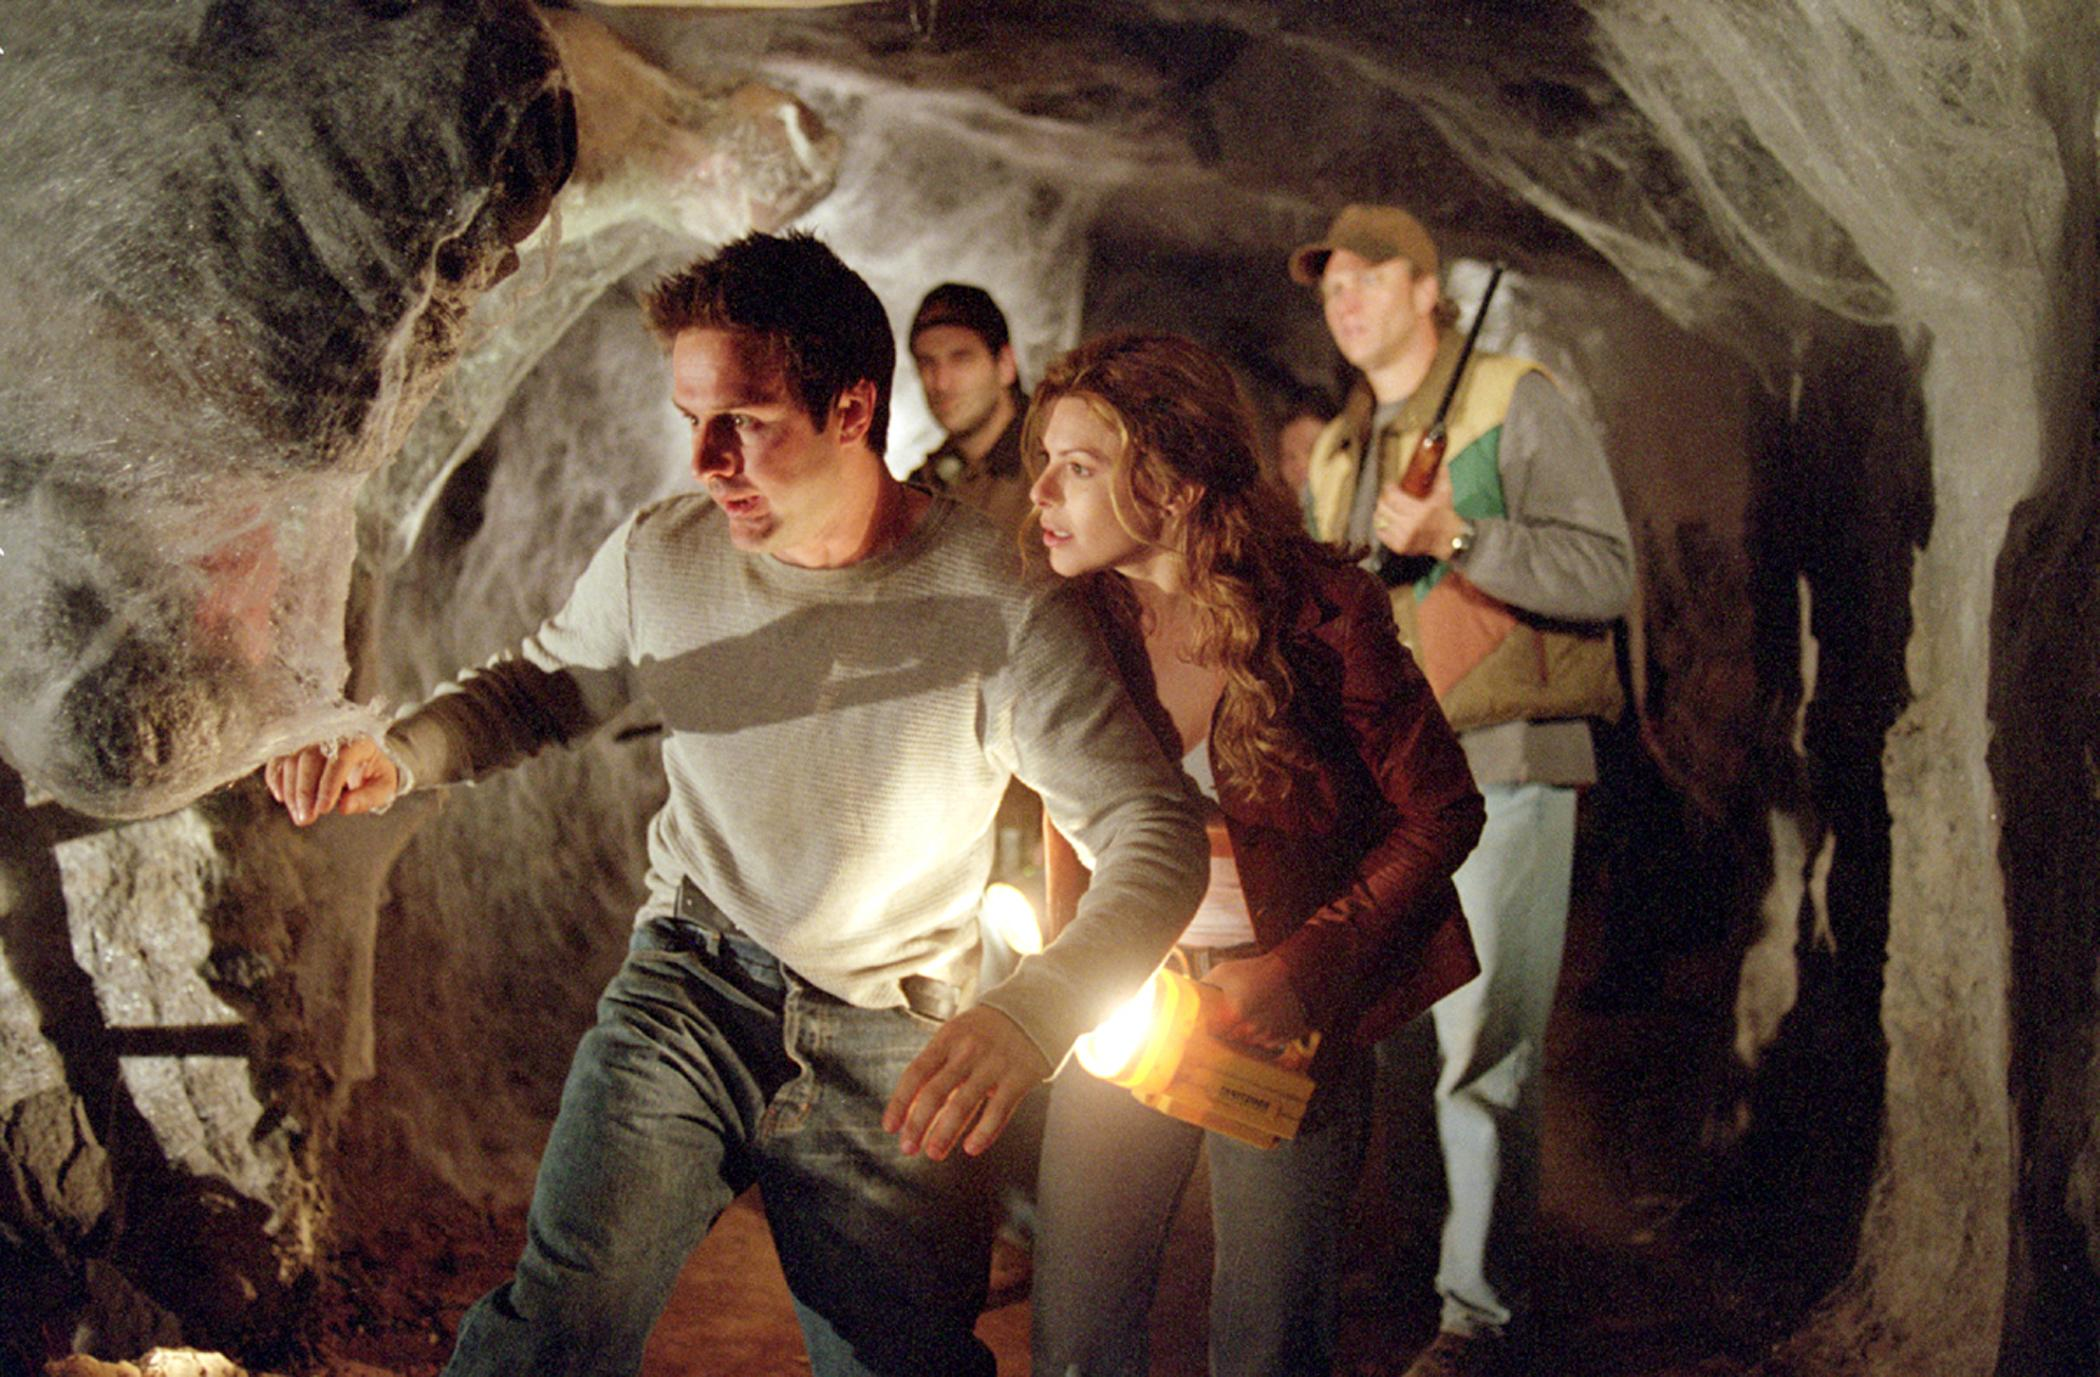 David Arquette, Kari Wuhrer enter the spider nest in Eight Legged Freaks (2002)